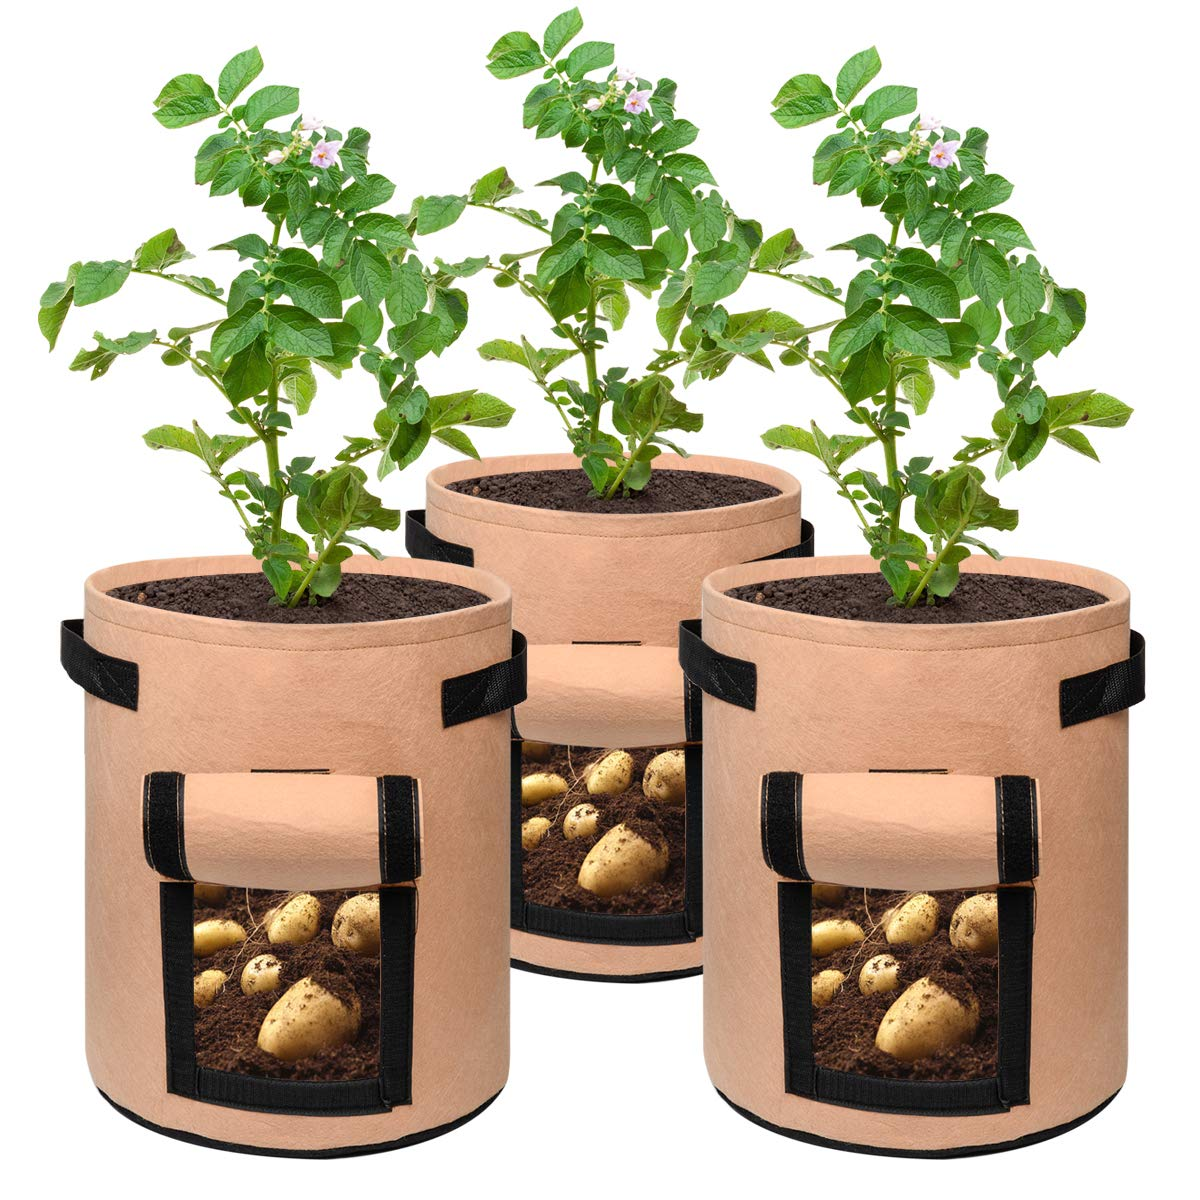 Breathable Garden Vegetable Growing Bags Plant Pots Container for Home Tomato Carrot SUNDEE 3 Pack 7 Gallon Grow Bags with Handle Potato